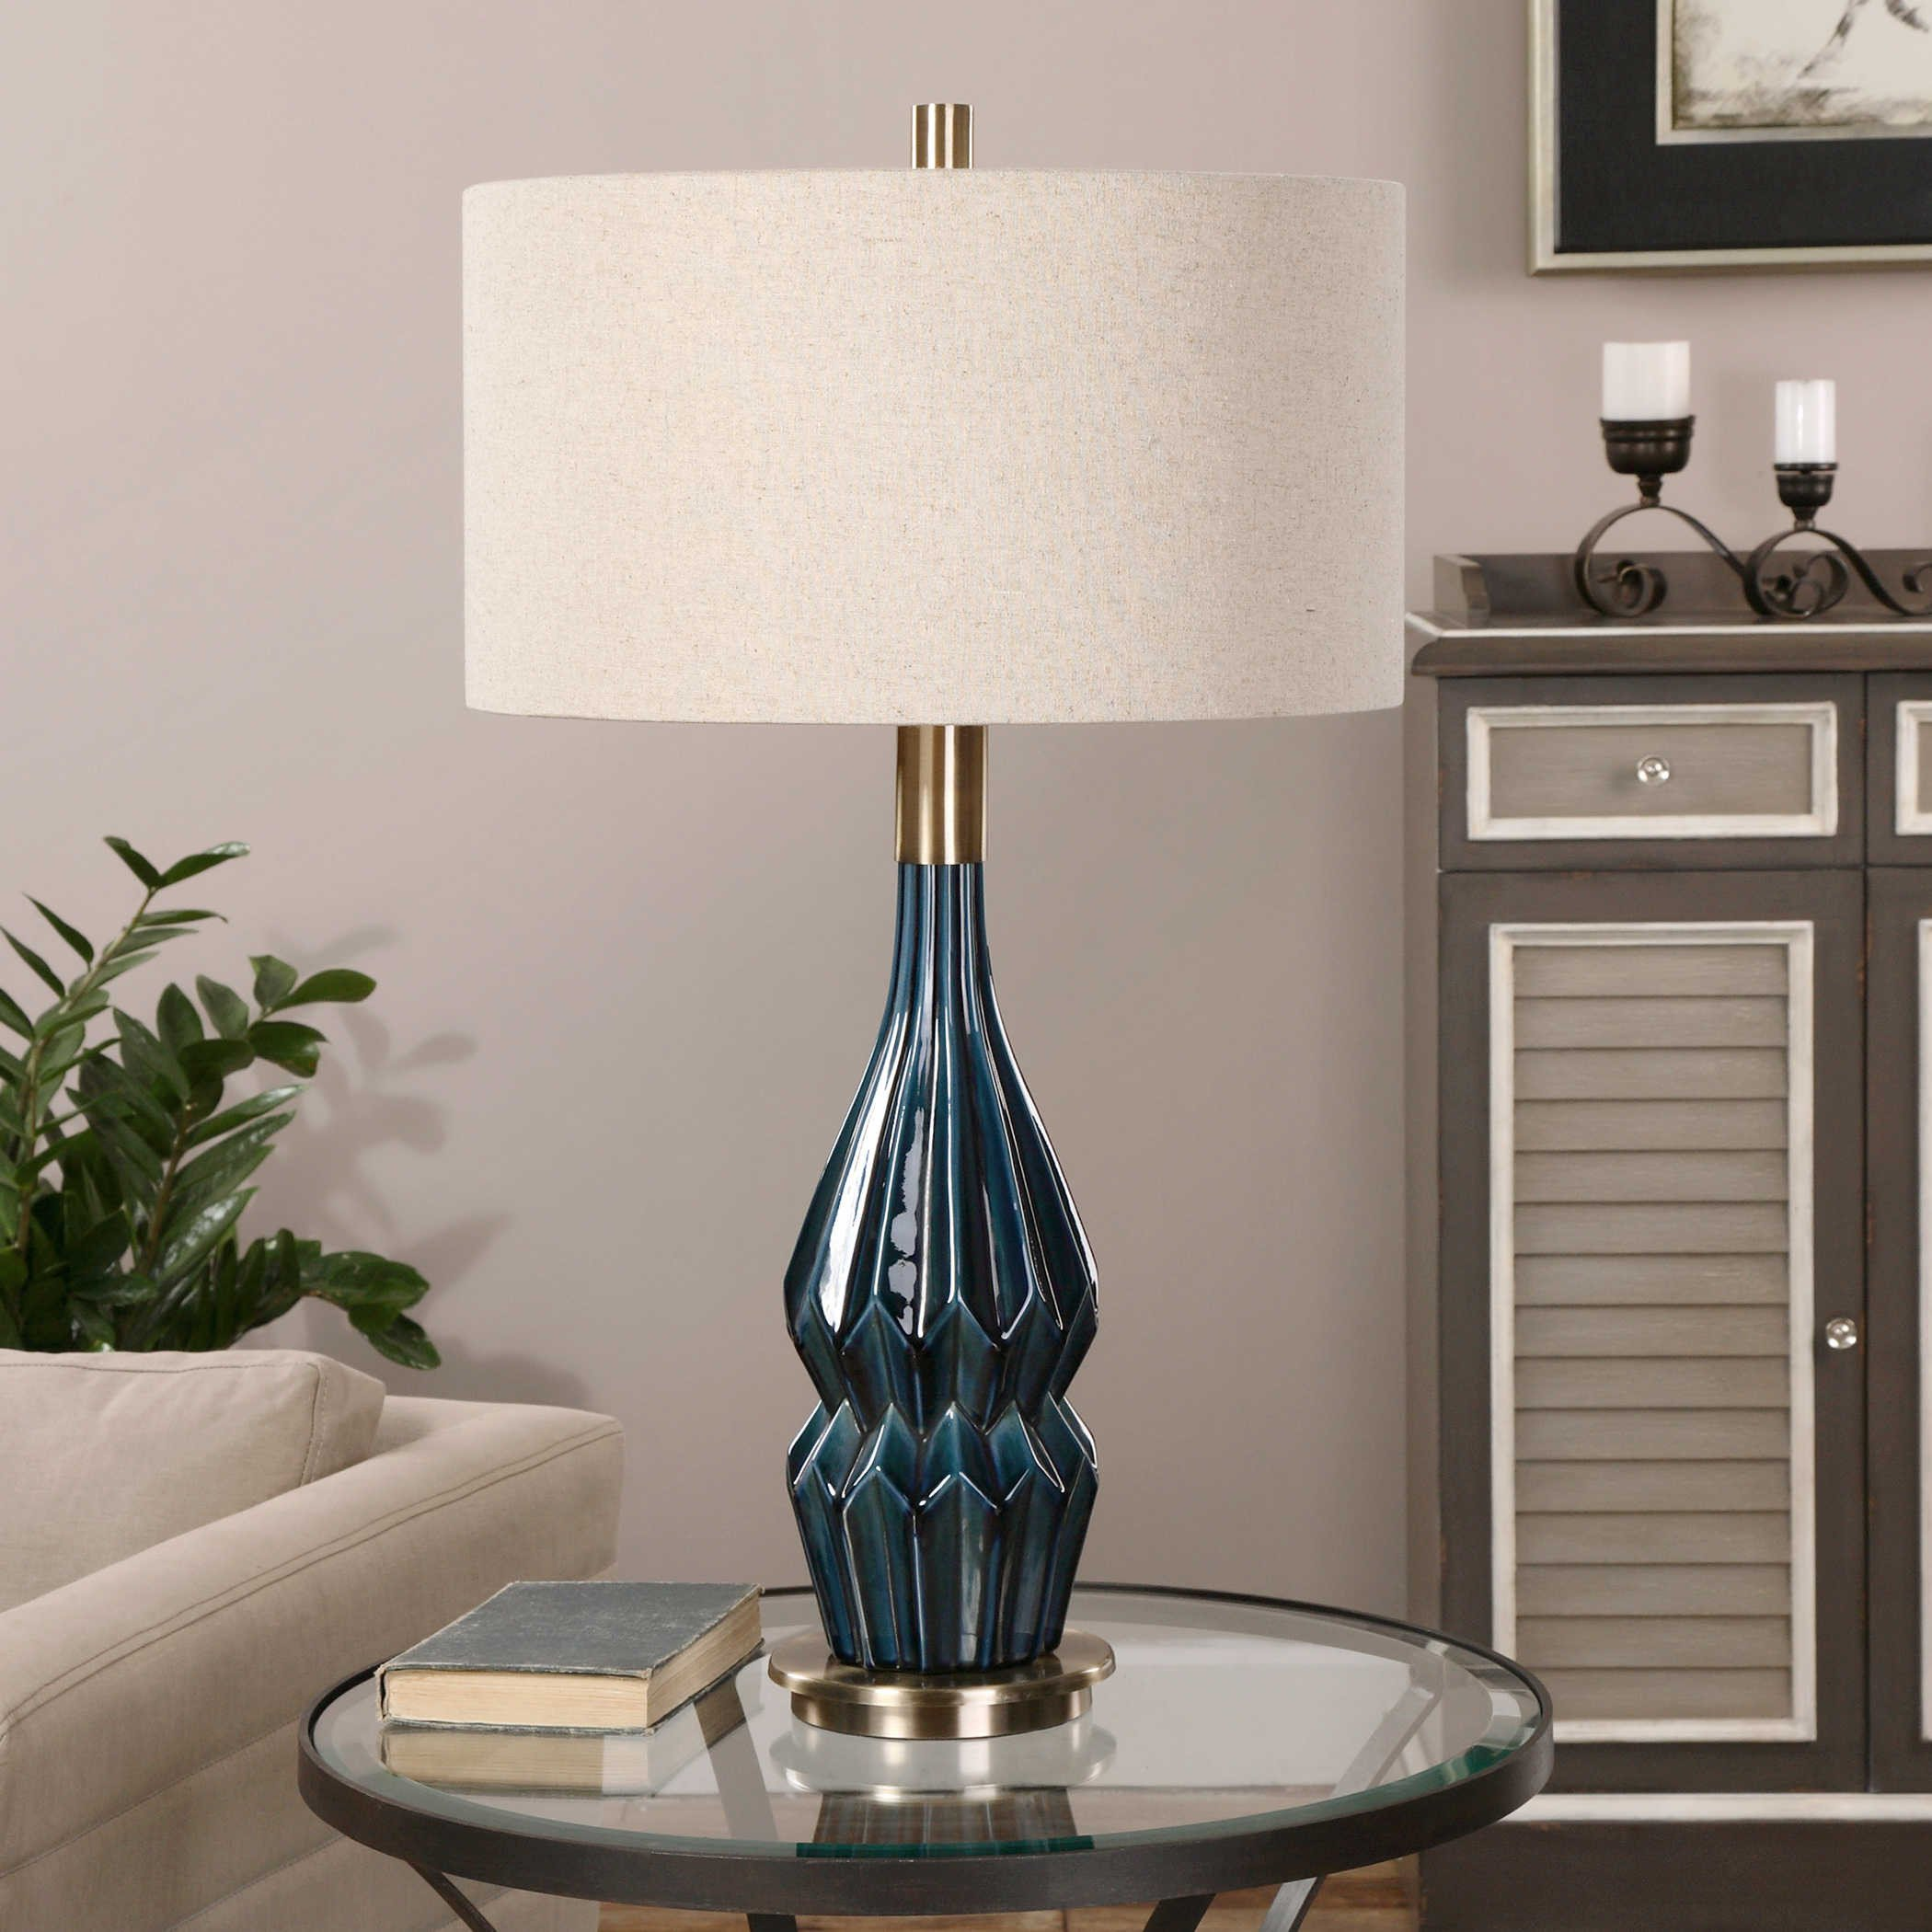 Cool Lamps for Bedroom Lovely Prussian Table Lamp